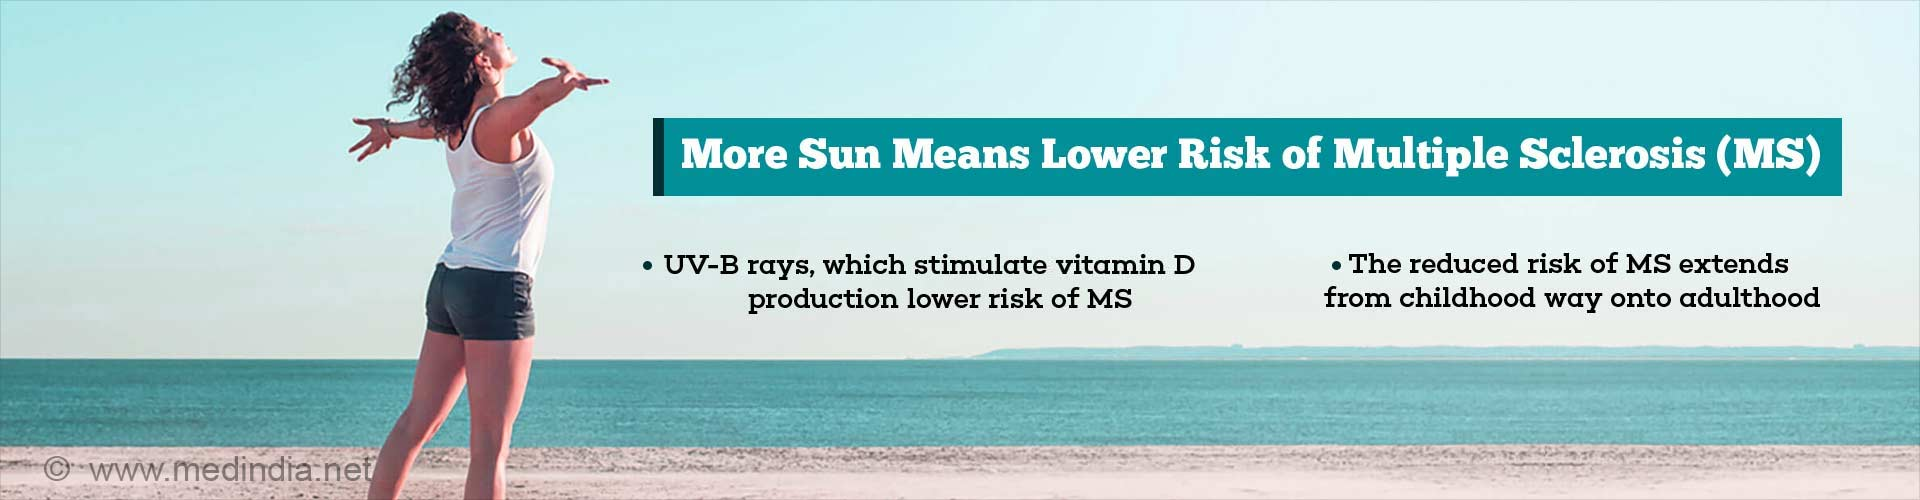 More Summer Sun may Mean Lower Risk of Multiple Sclerosis